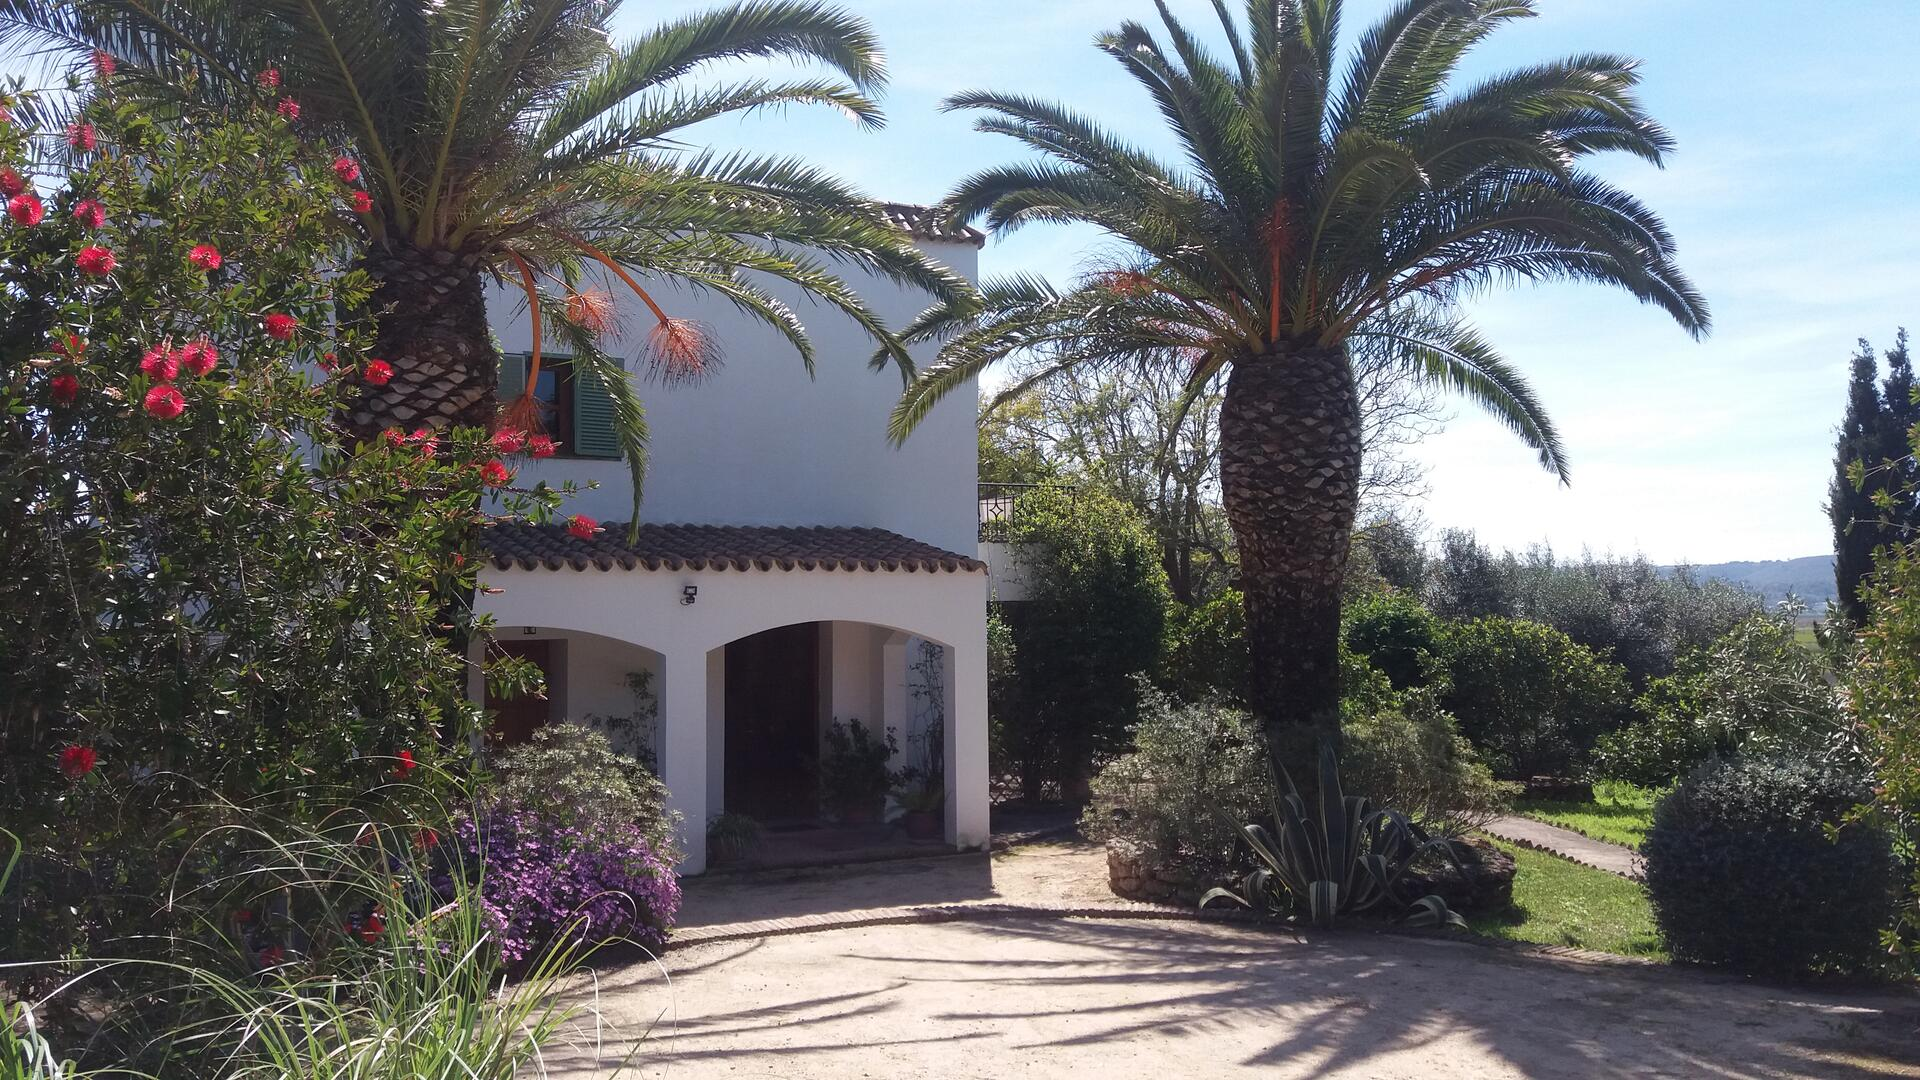 El Sueno, child-friendly holiday cottage in Andalucia on Holiday Tots